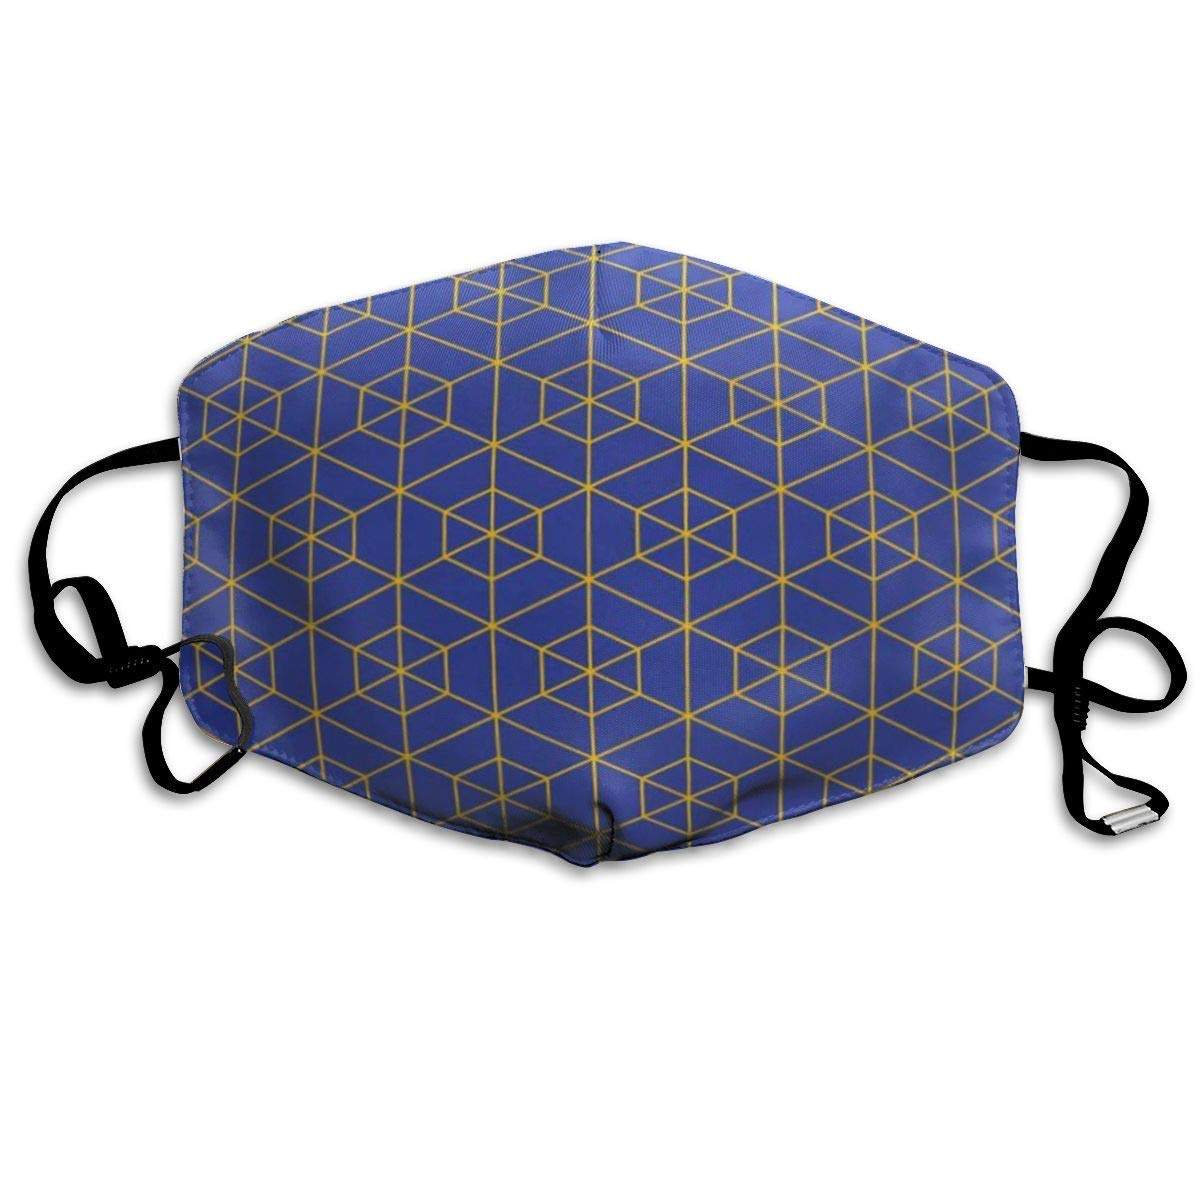 Dust-proof Thermal Masks, Suitable For Running And Cycling Outdoor Activities, Multi-purpose Masks-Graphic Bauhaus Blue And Yellow Hexagonal Outline Grid Pattern Abstract Block